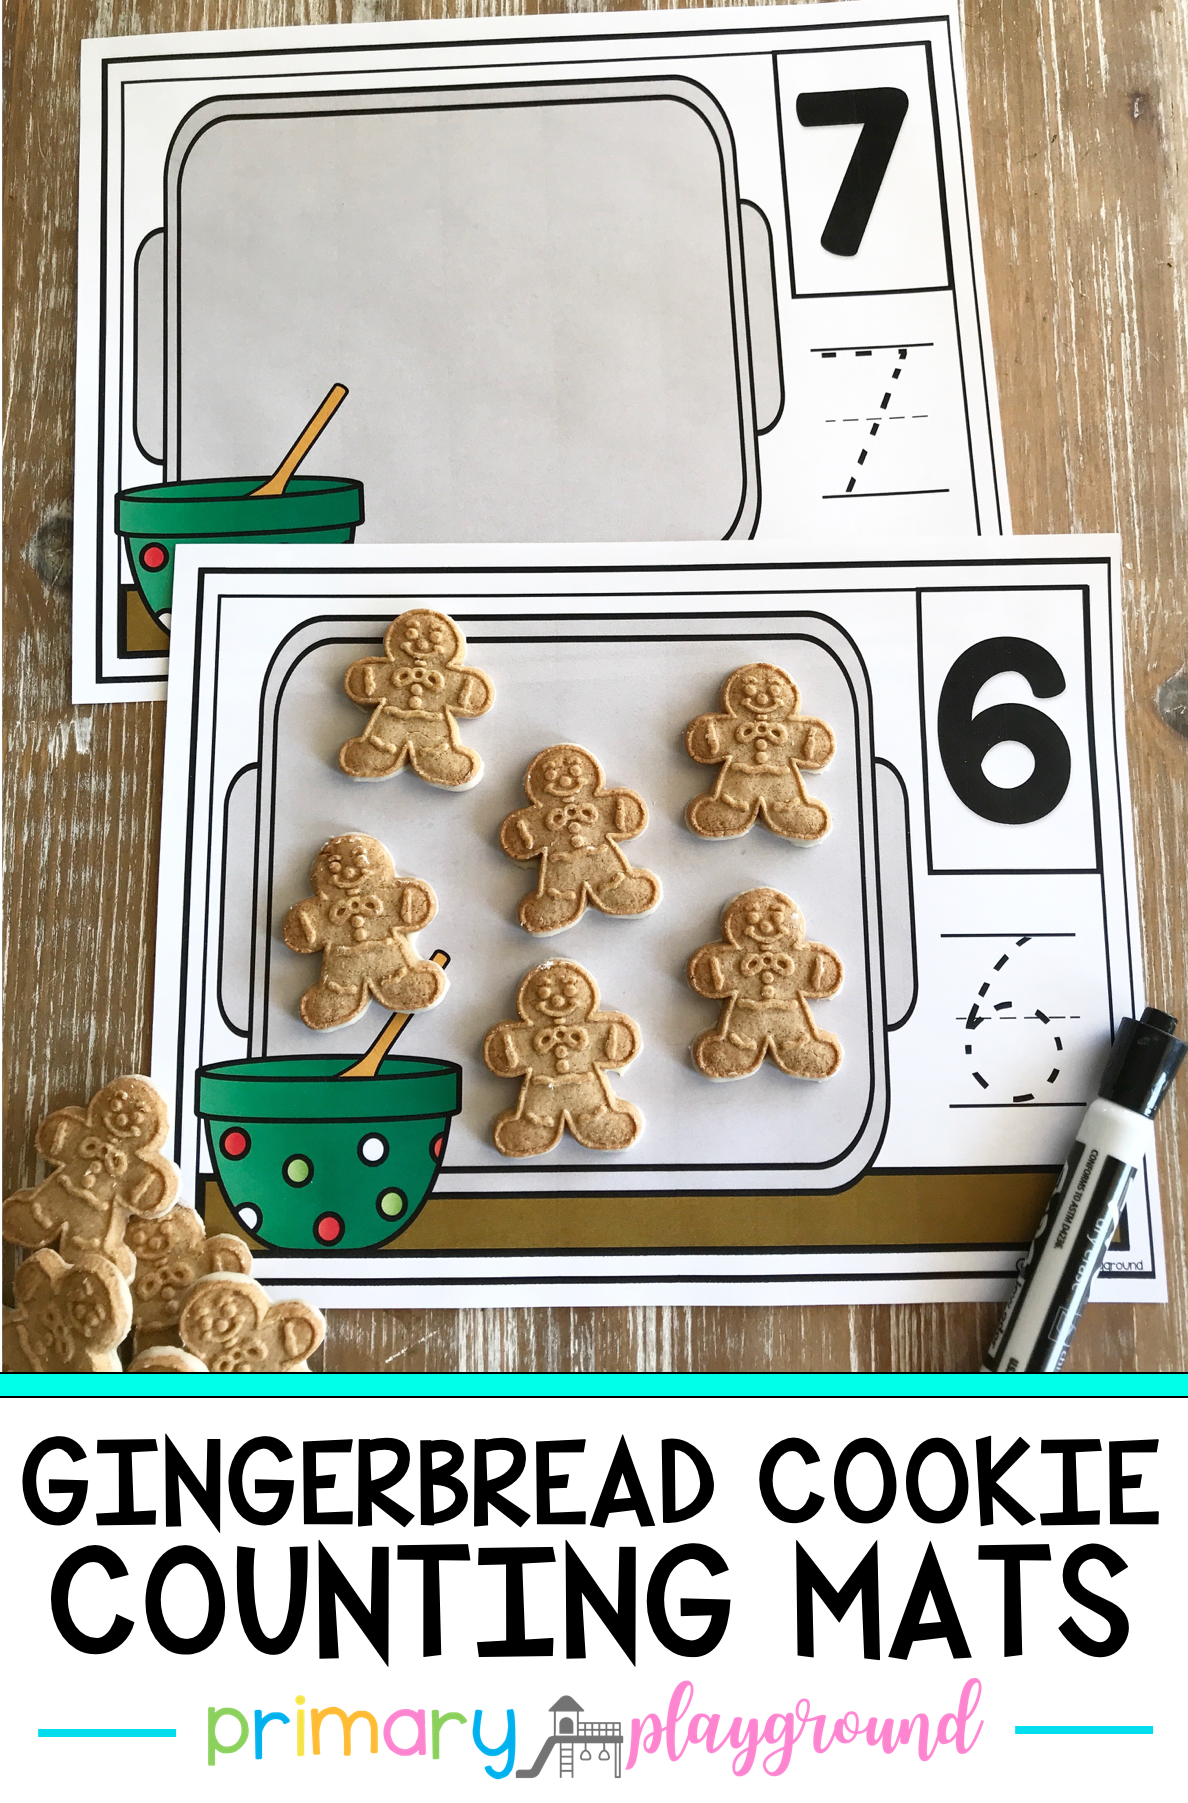 Gingerbread Cookie Counting Mats 1